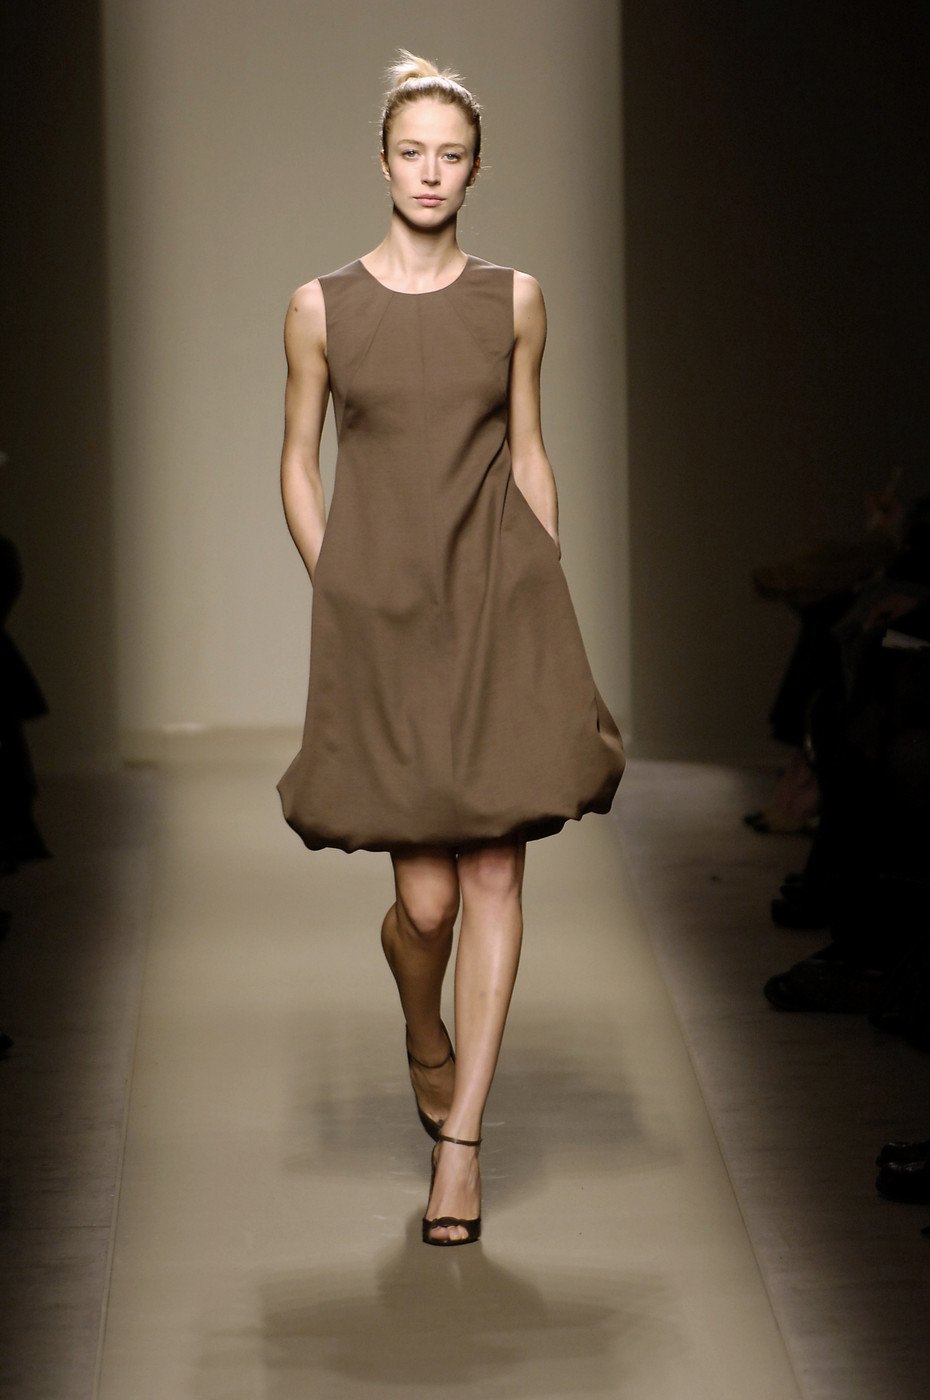 via fashioned by love | bottega veneta fall/winter 2006